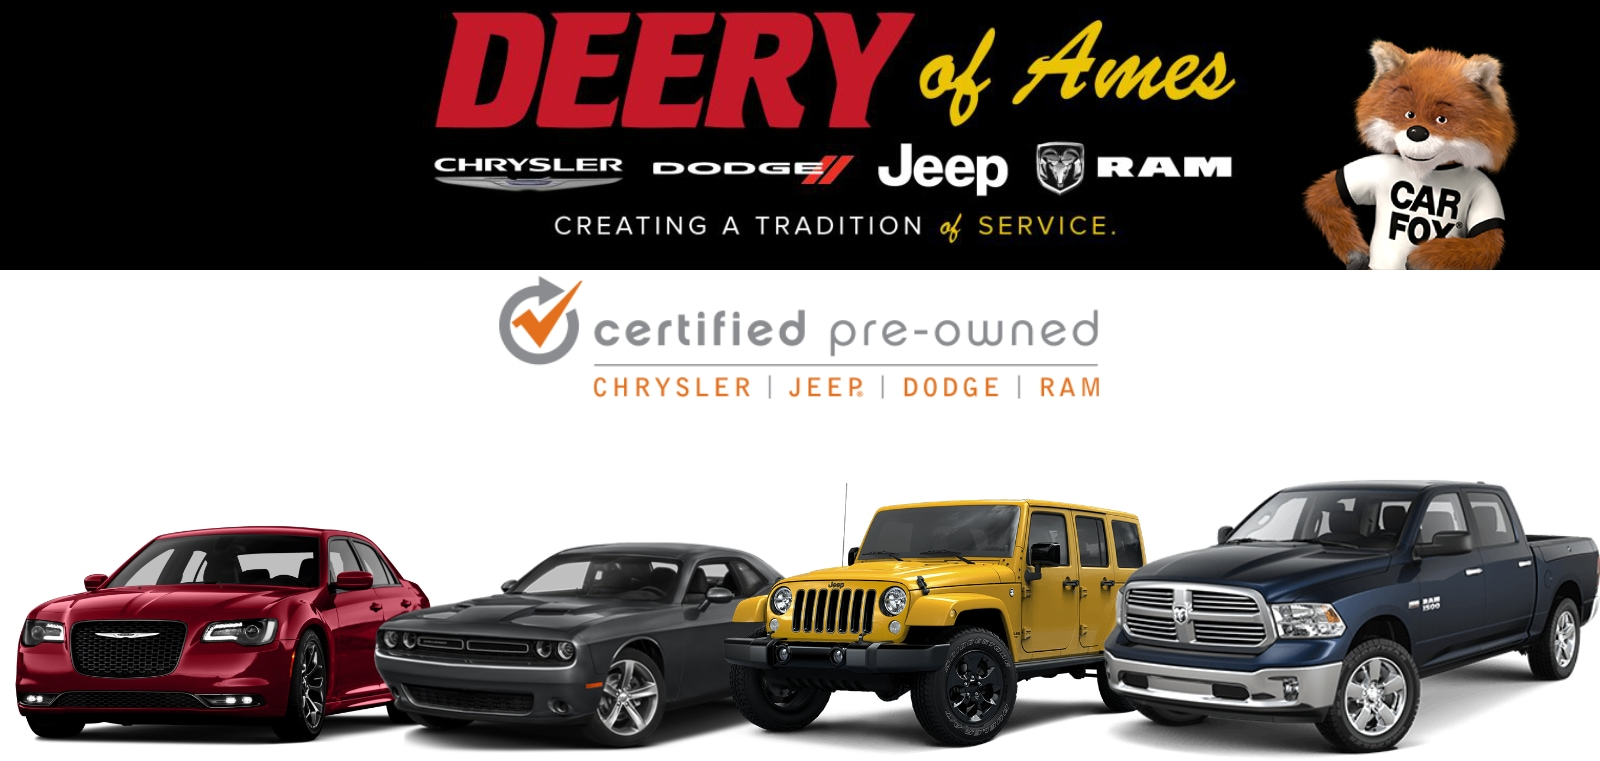 deery of ames chrysler dodge jeep ram iowa why buy certified. Black Bedroom Furniture Sets. Home Design Ideas